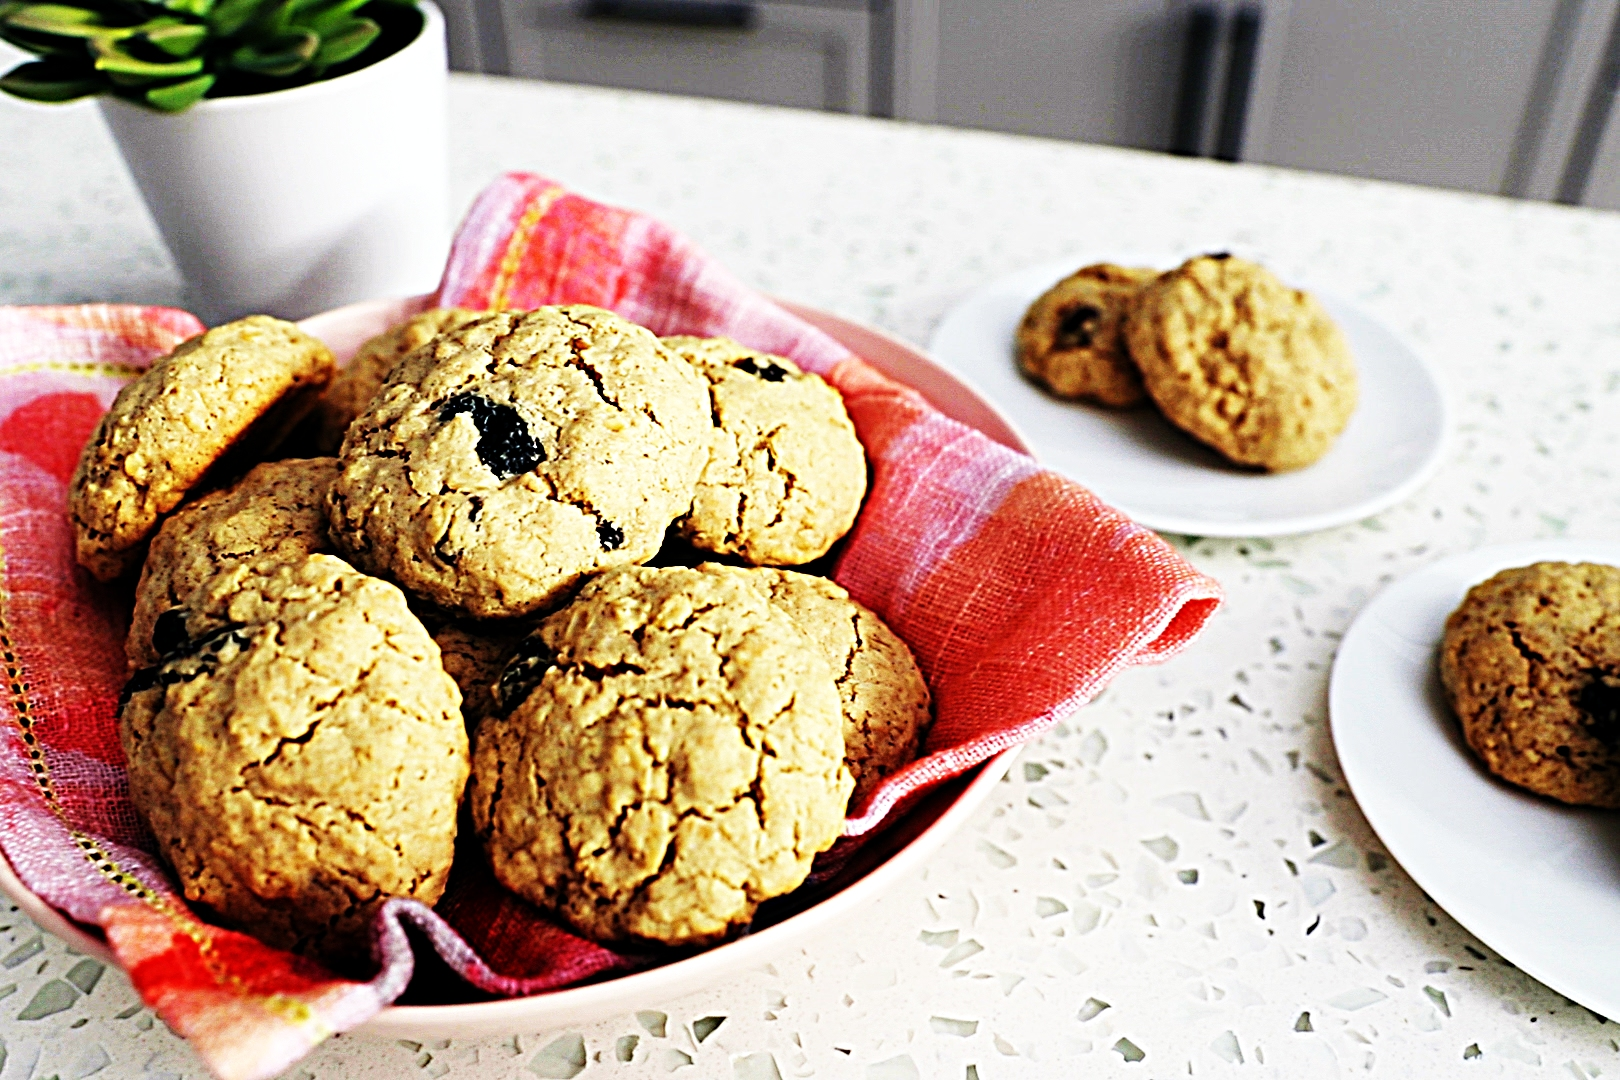 Stupid-Easy Recipe for Gluten-Free Oatmeal Raisin Cookies (#1 Top-Rated)